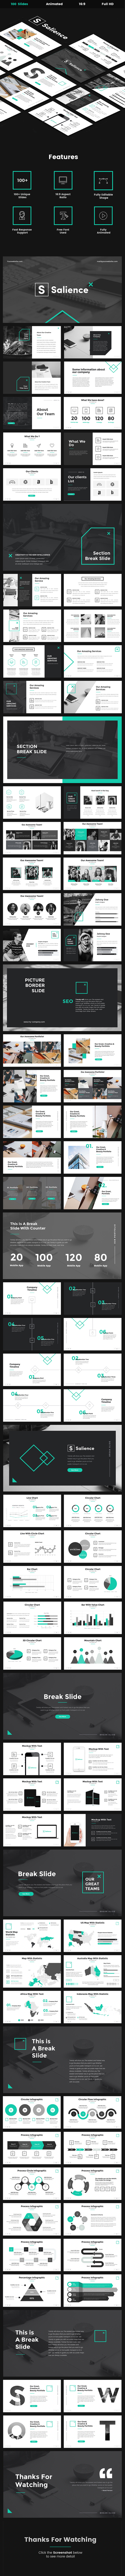 Salience - Creative Google Slides Template - Google Slides Presentation Templates